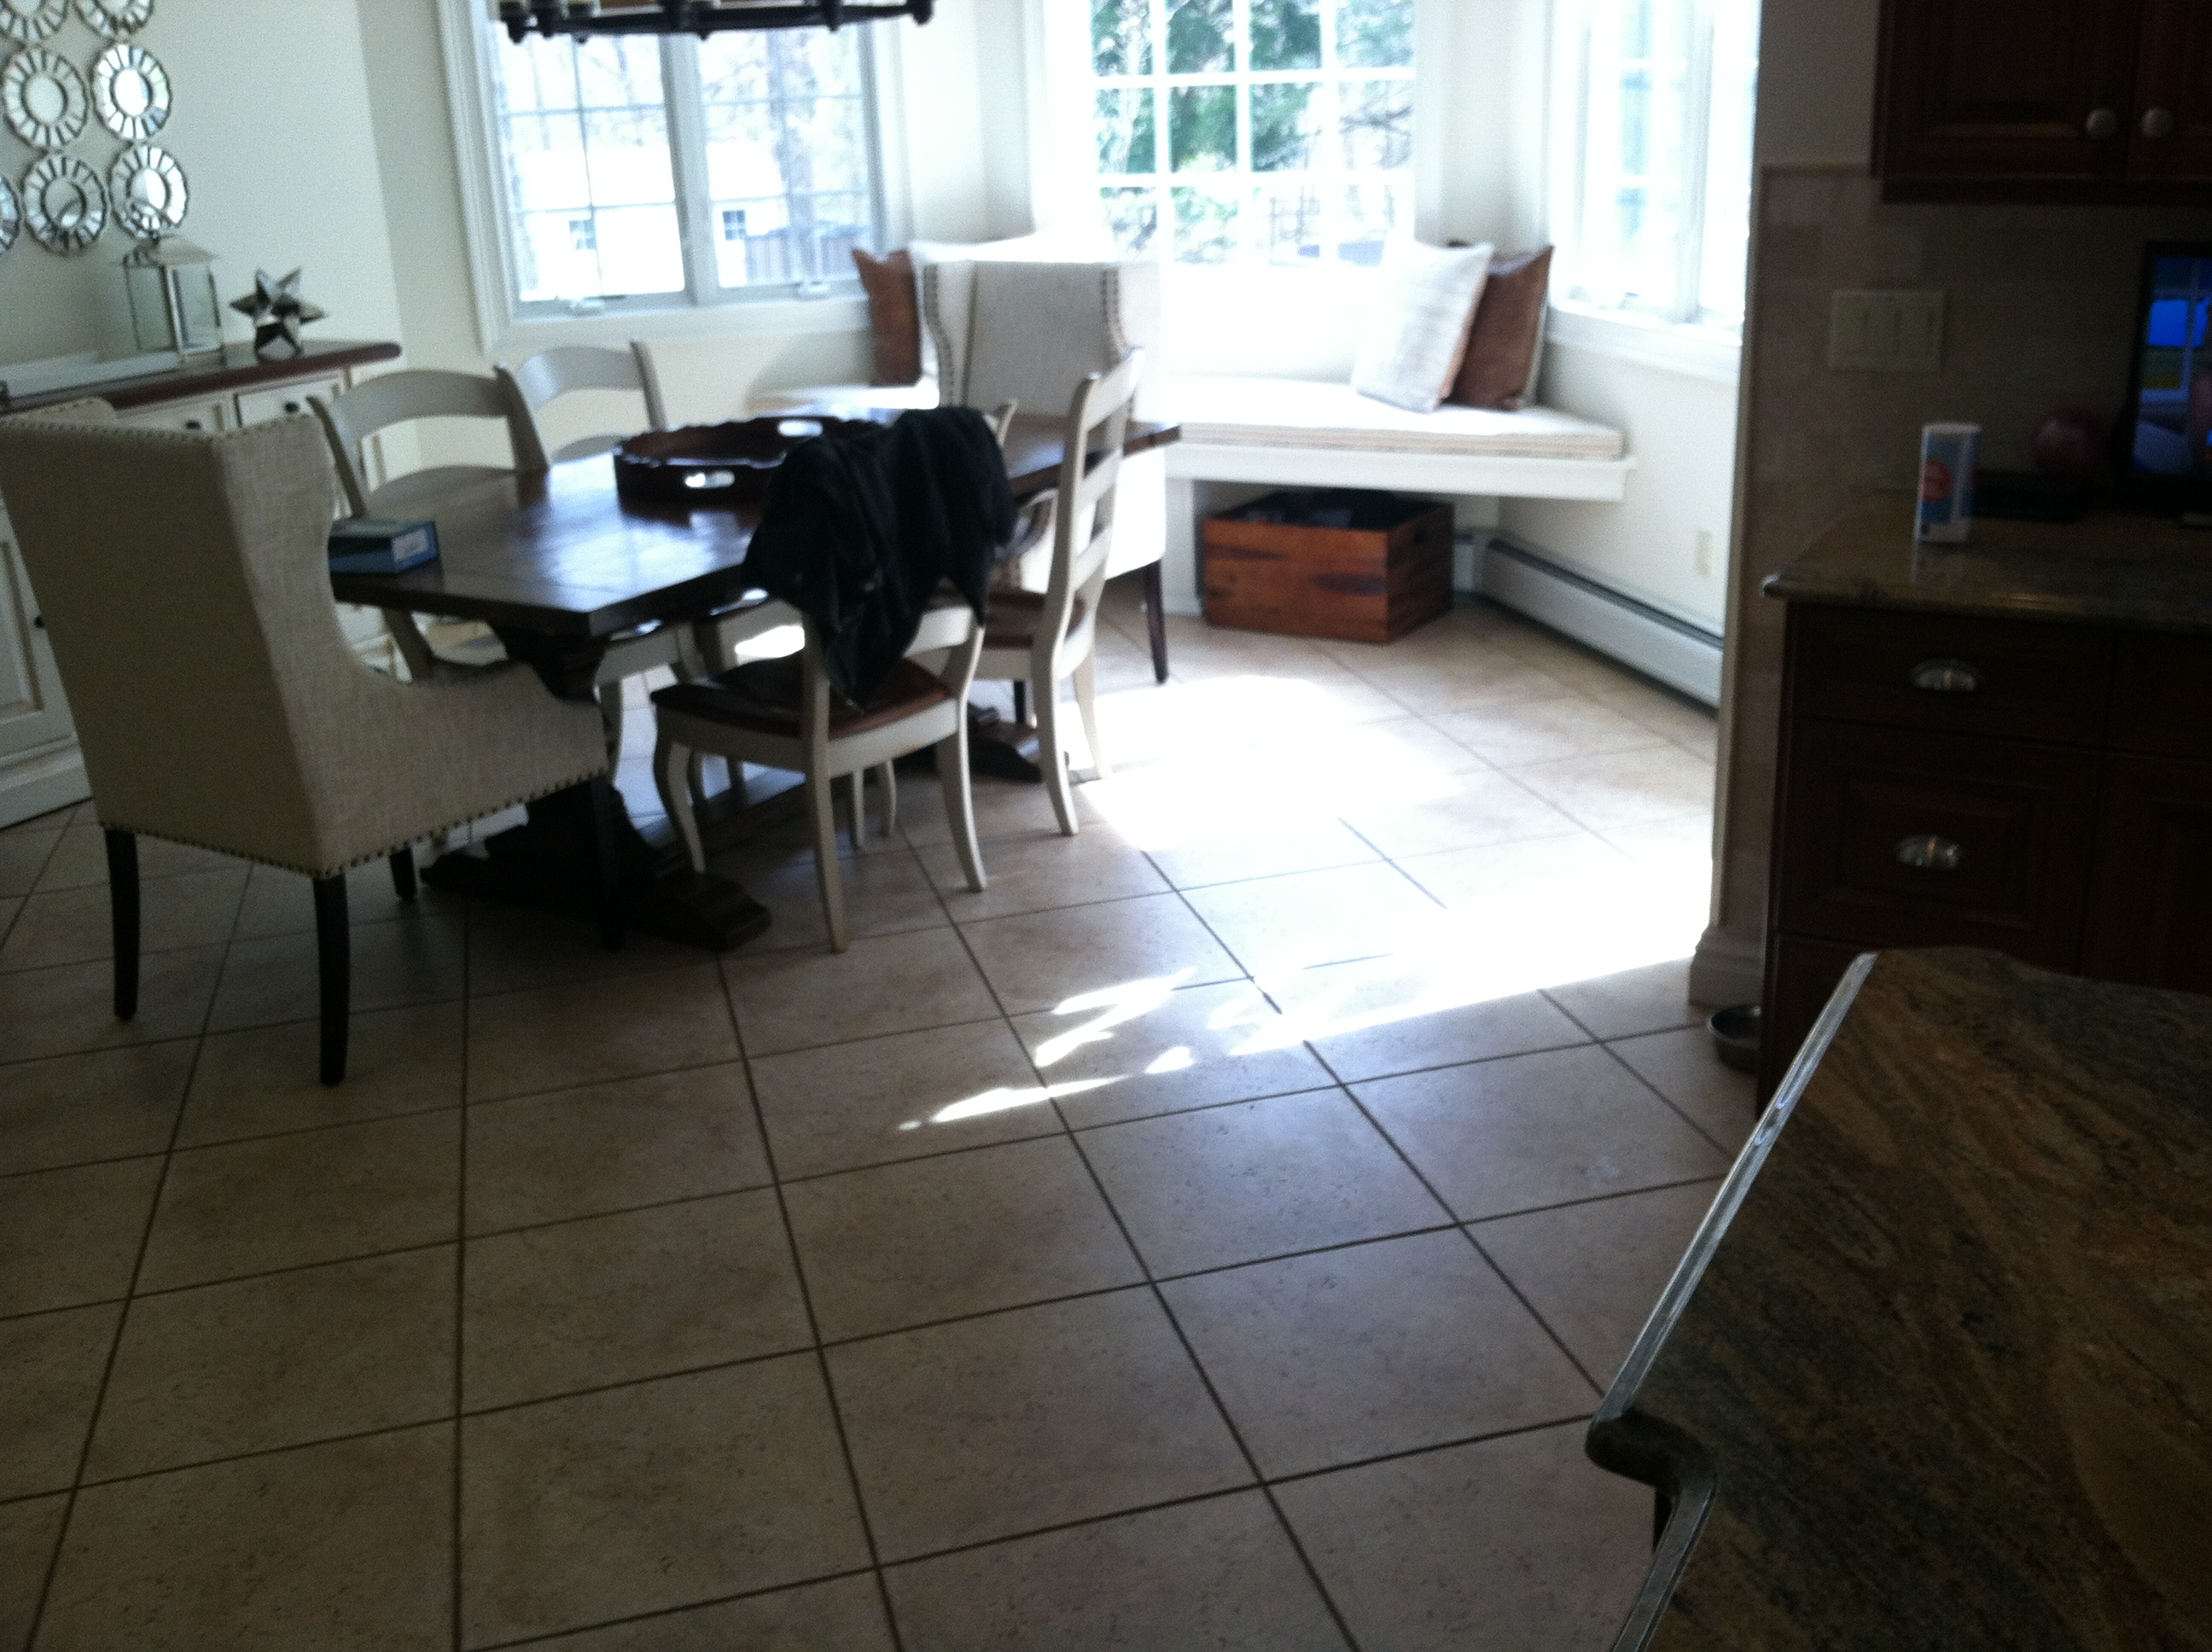 eat-in-kitchen-area-before-the-installation-of-wood-like-luxury-vinyl-tile-planks